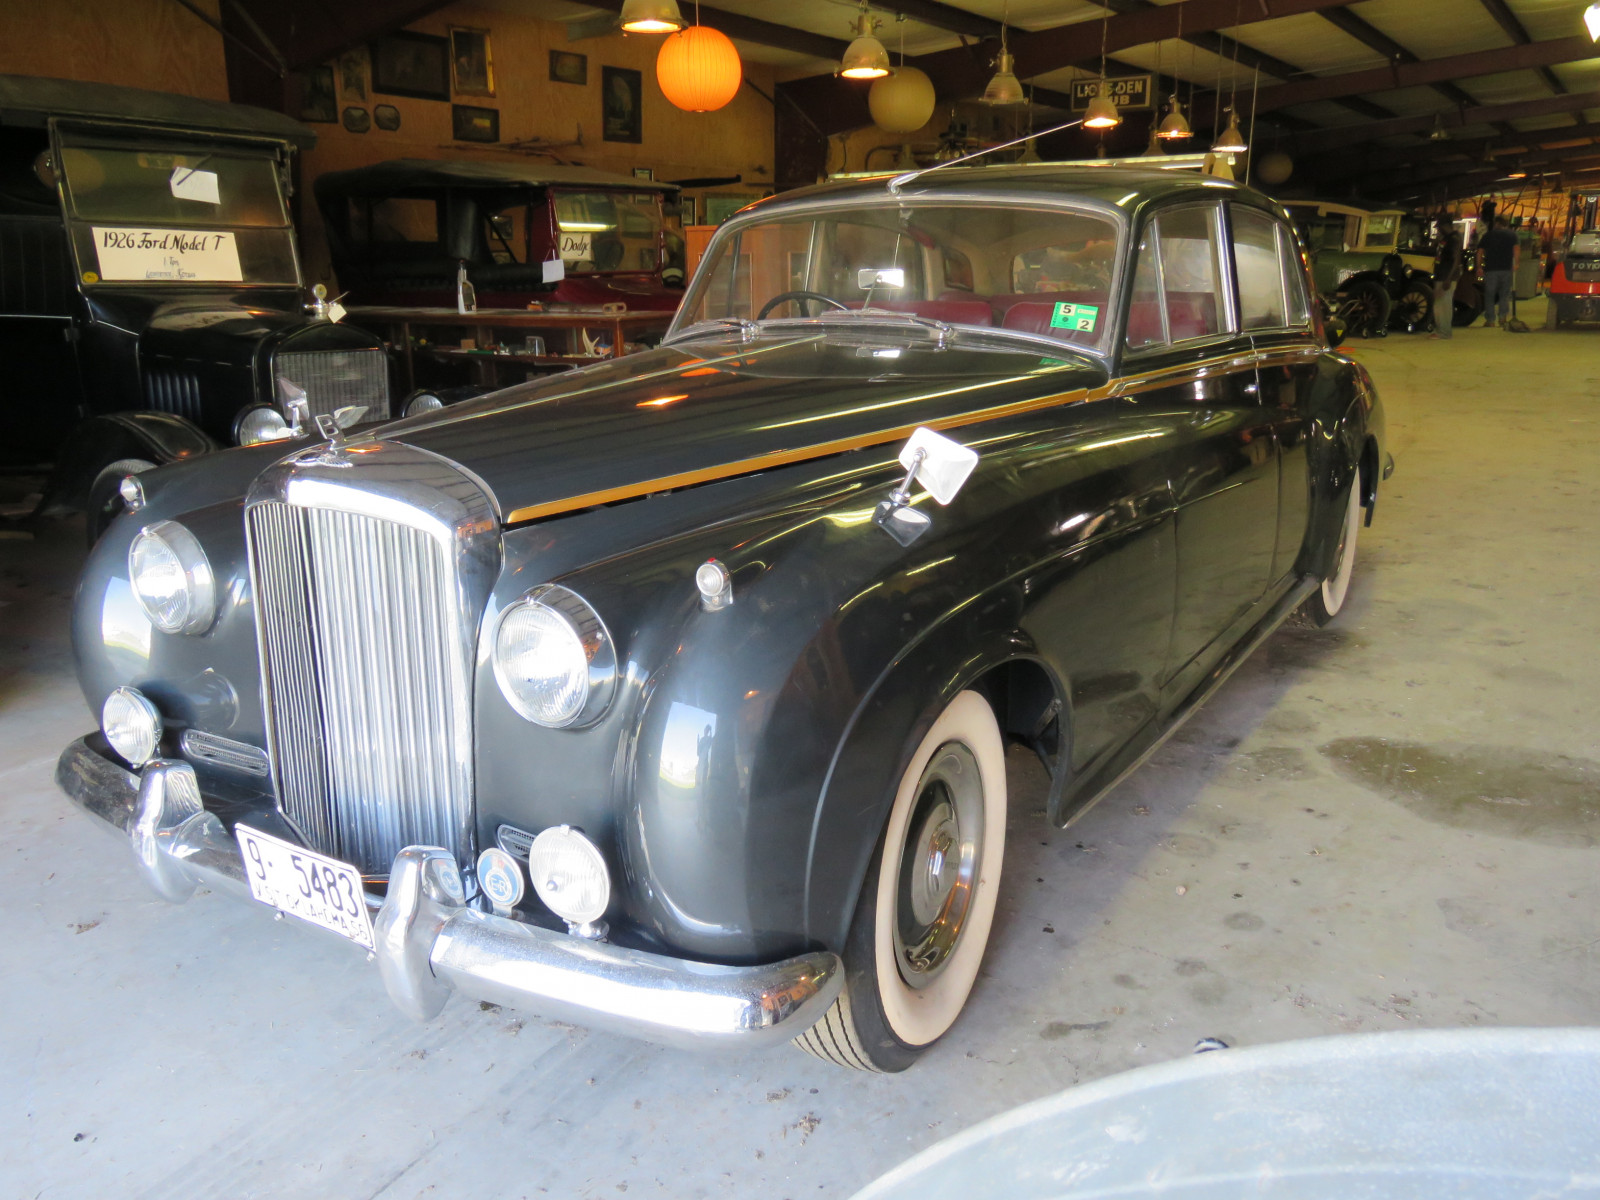 1956 Bentley 4dr Sedan - Image 9